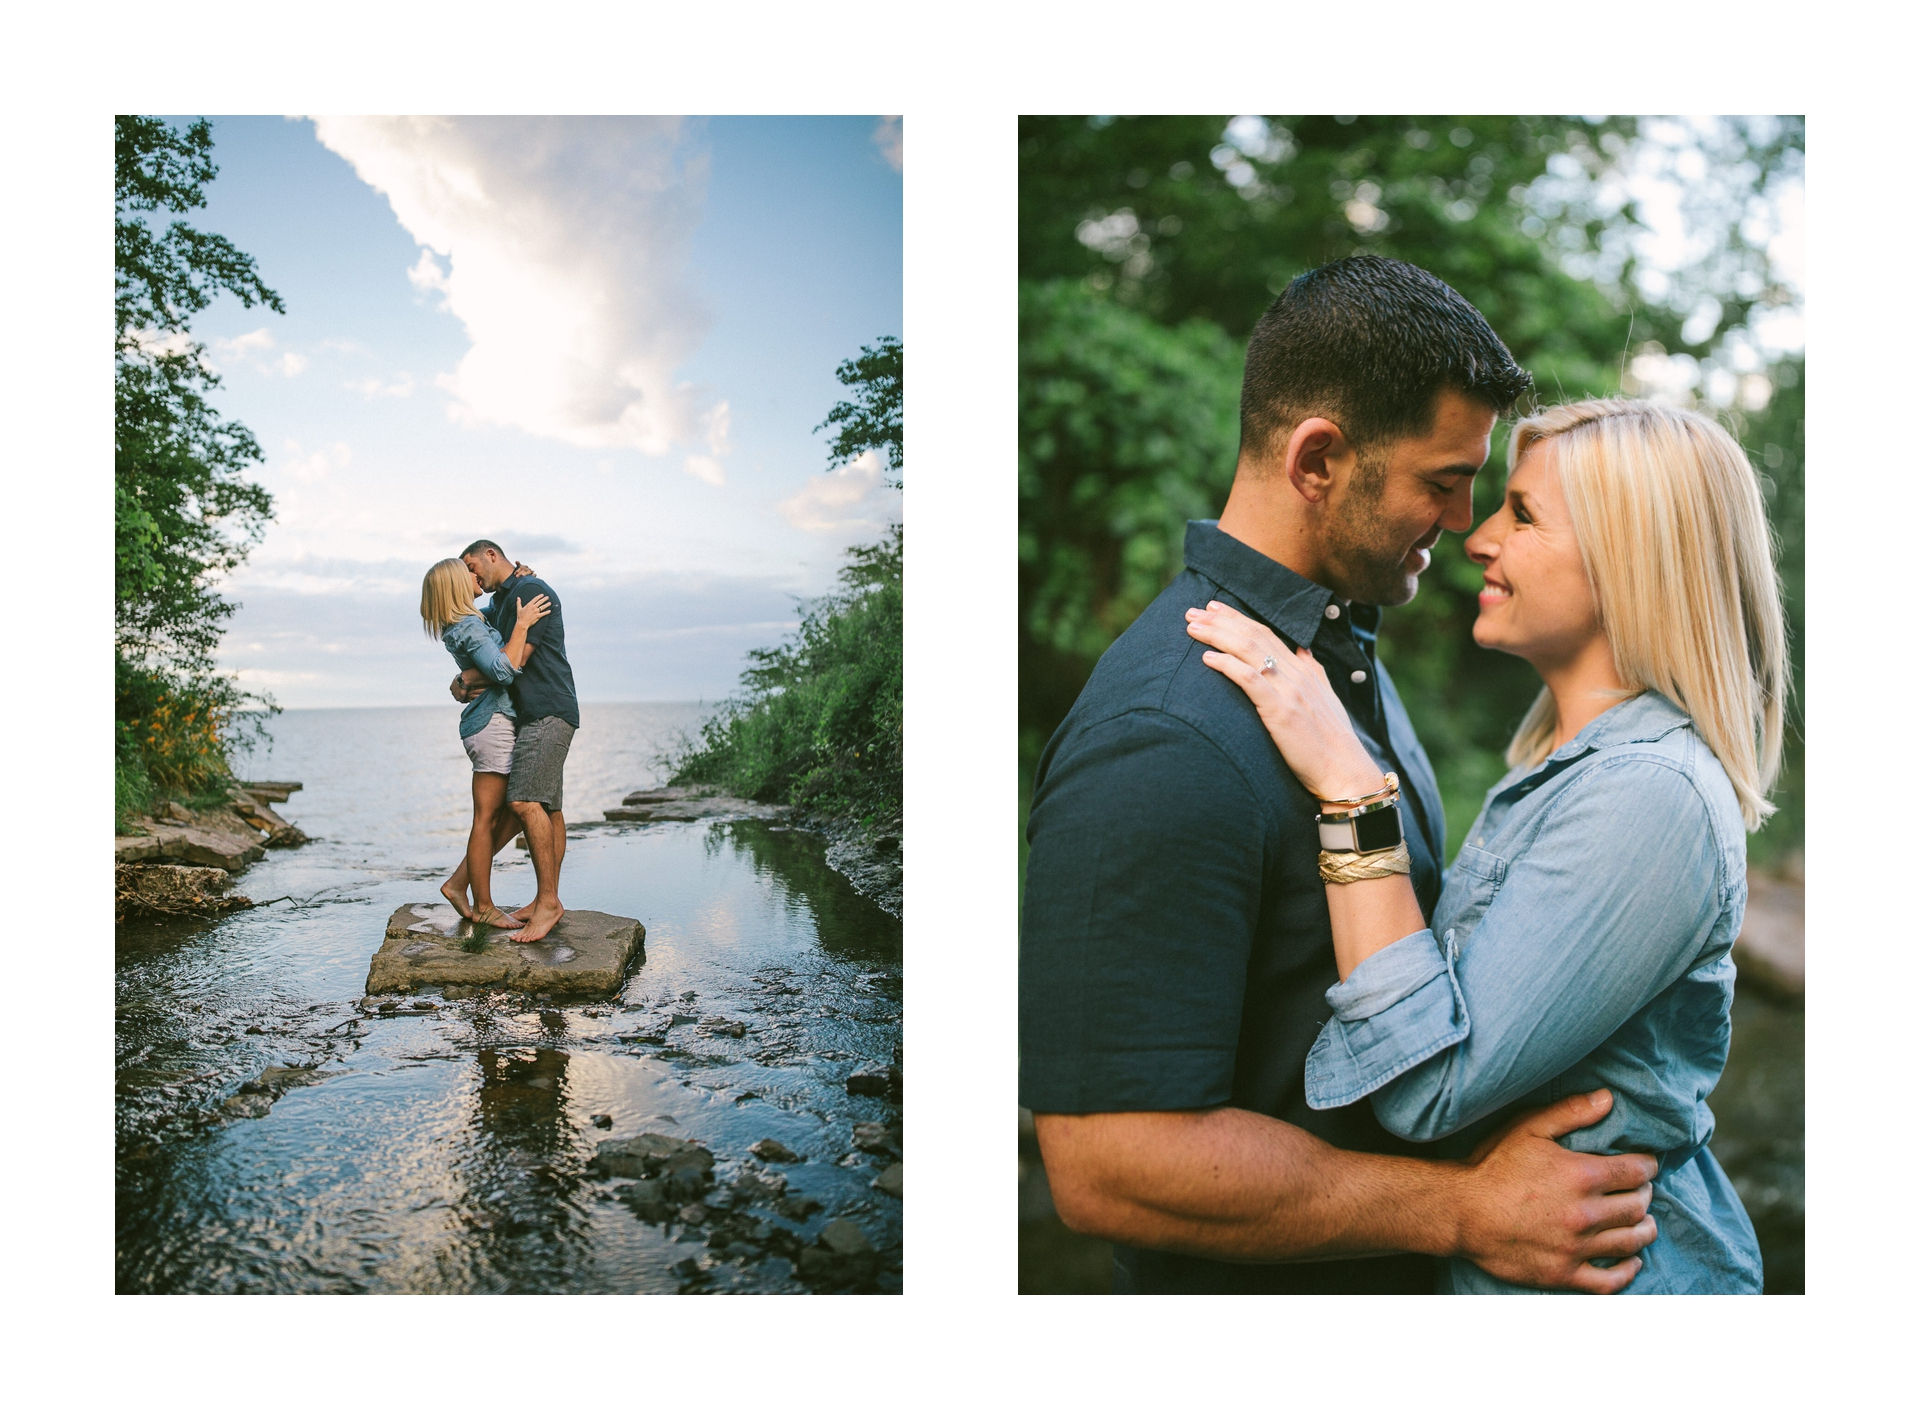 Sara Shookman Angelo DiFranco Engagement photos in cleveland by too much awesomeness photography 21.jpg